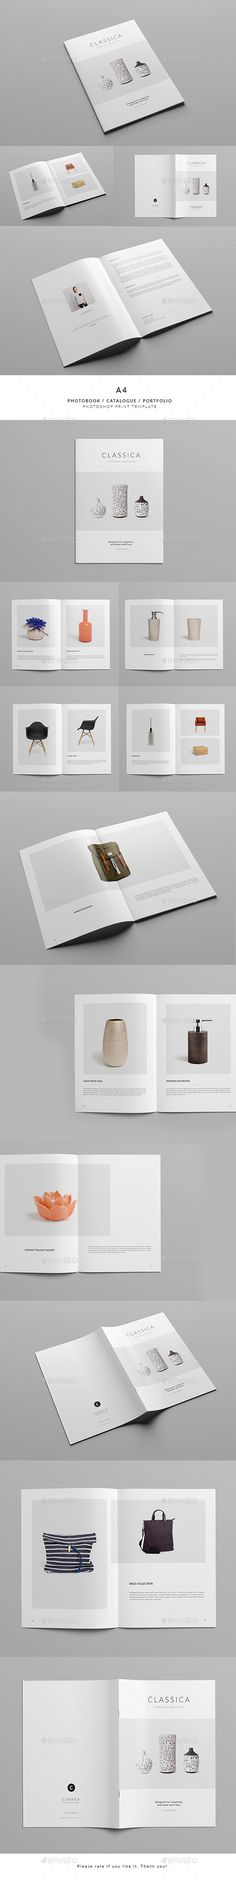 Classica / Multipurpose Minimal Portfolio Brochure Template PSD. Download here: http://graphicriver.net/item/classica-multipurpose-minimal-portfolio/15284269?ref=ksioks